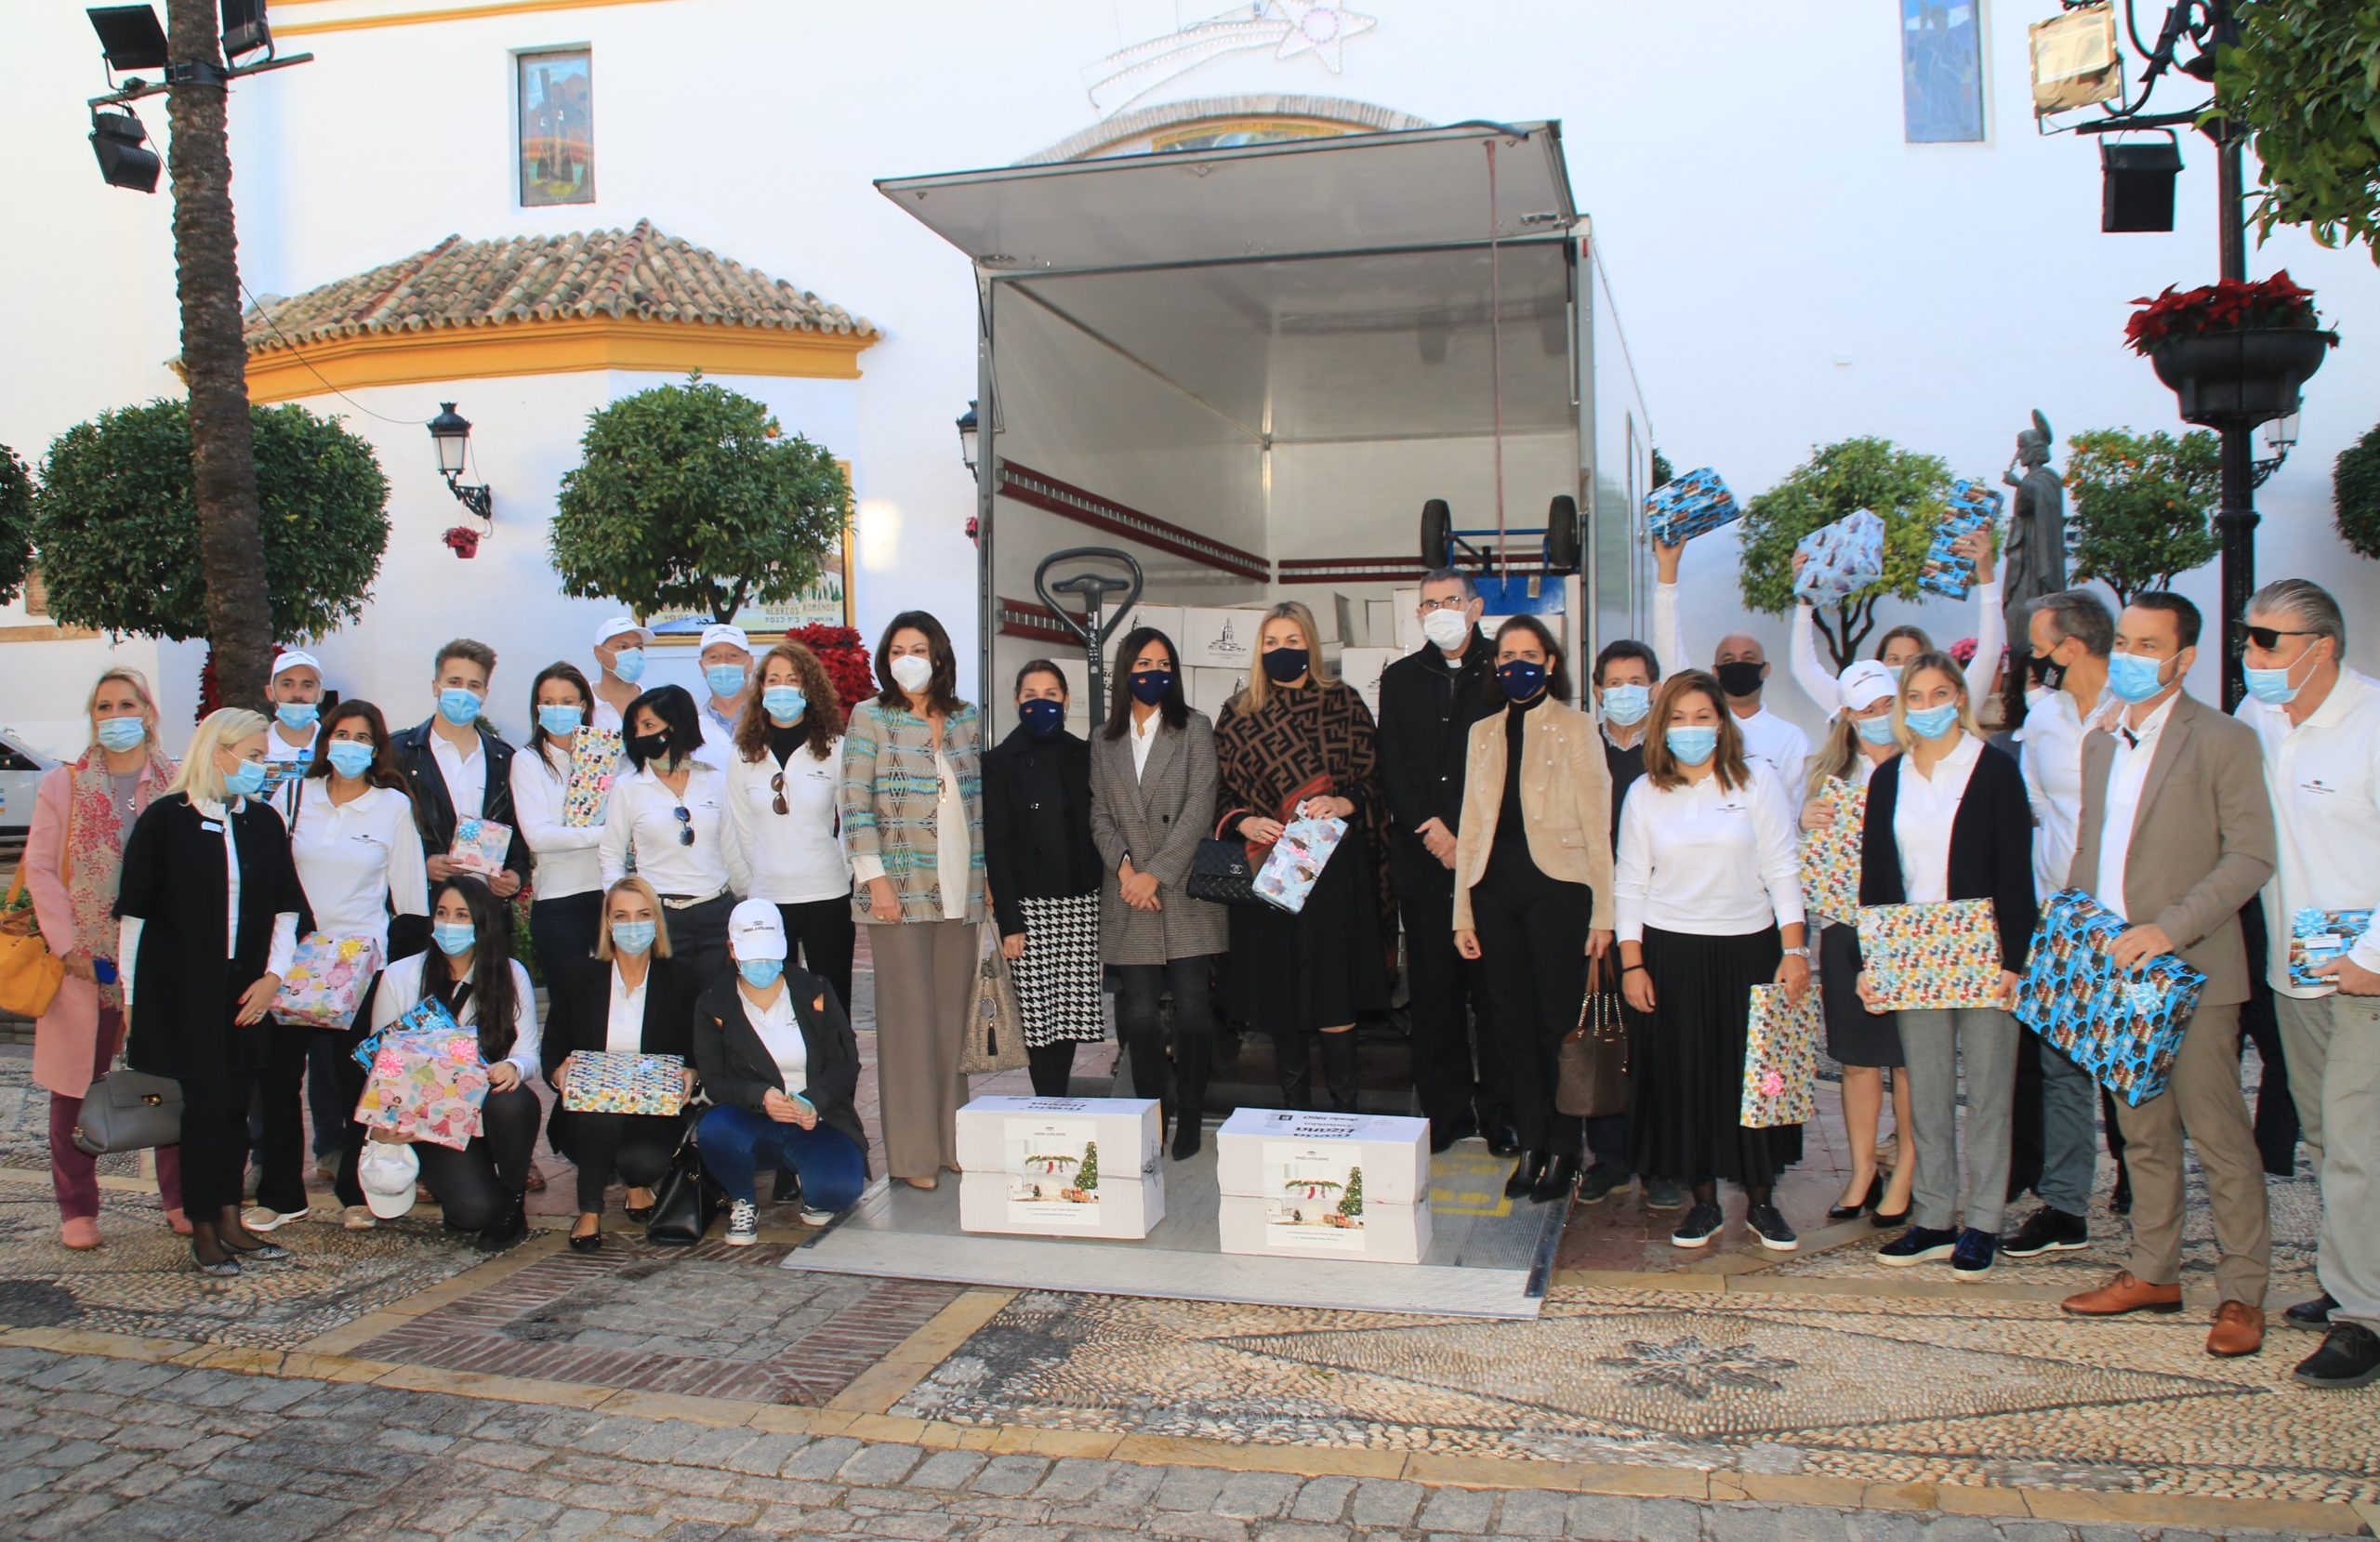 Engel & Völkers Marbella donates 9 tons of food